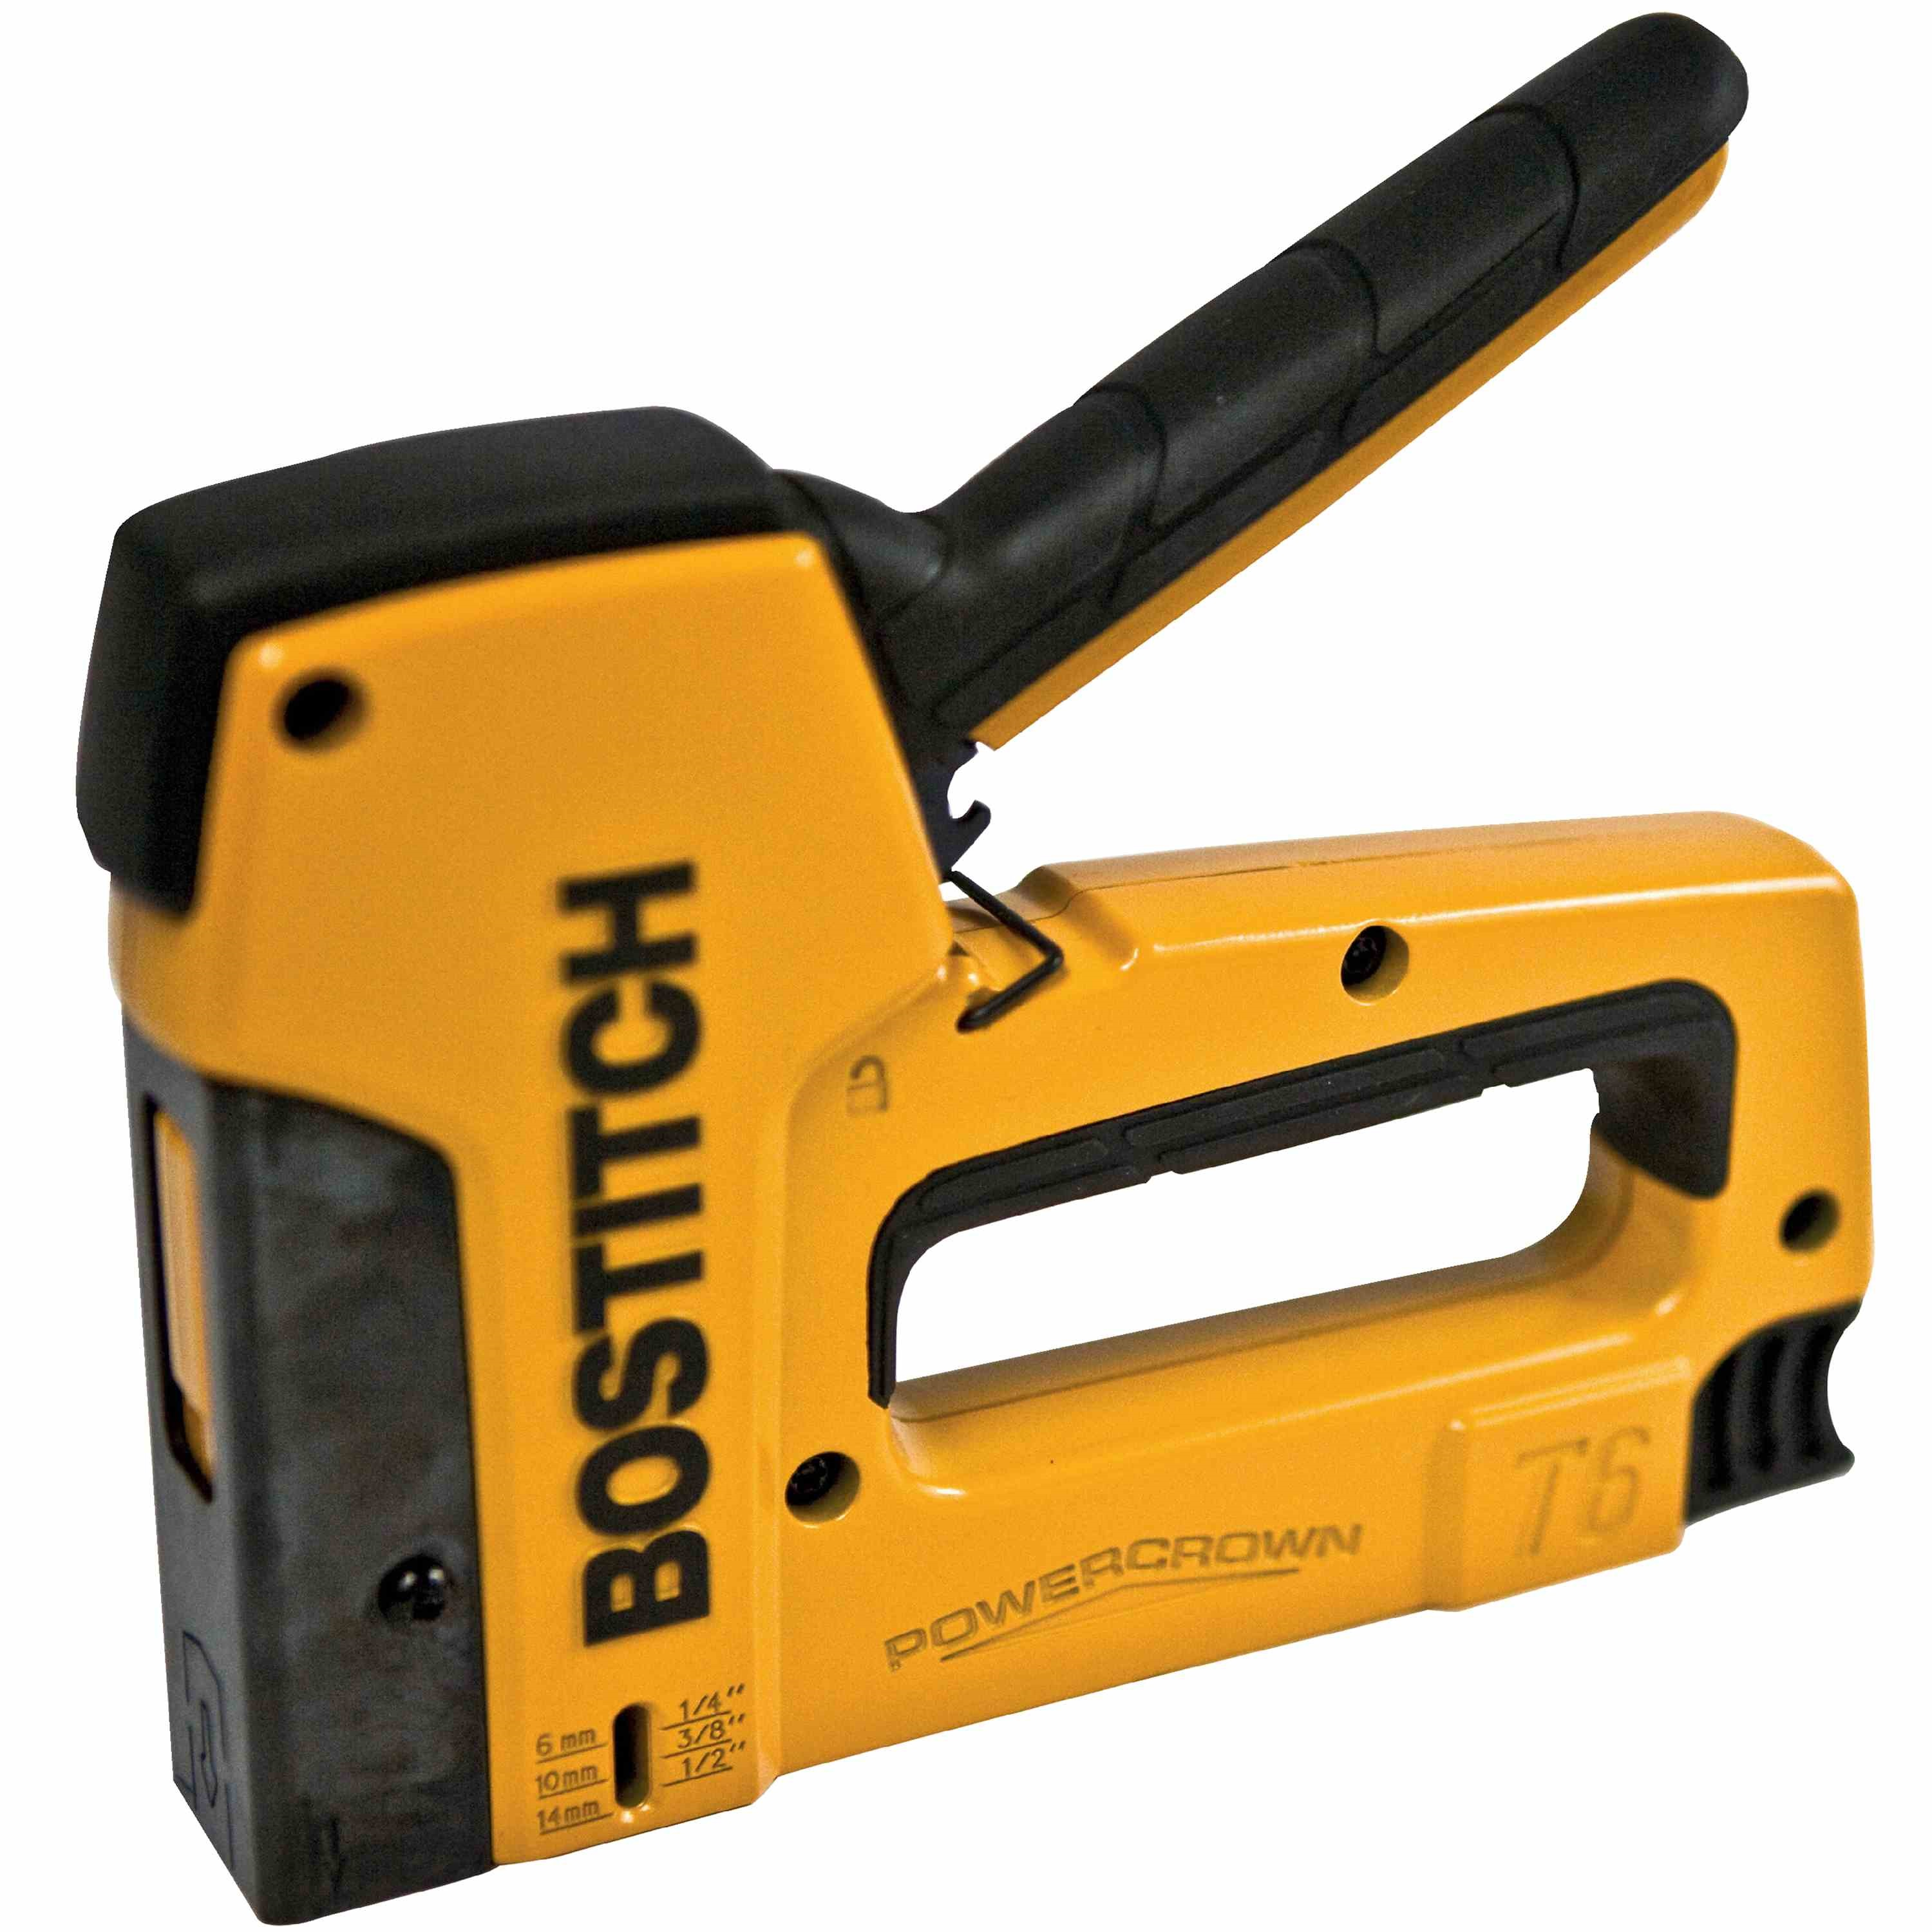 Bostitch - Heavy Duty PowerCrown Tacker - T6-8